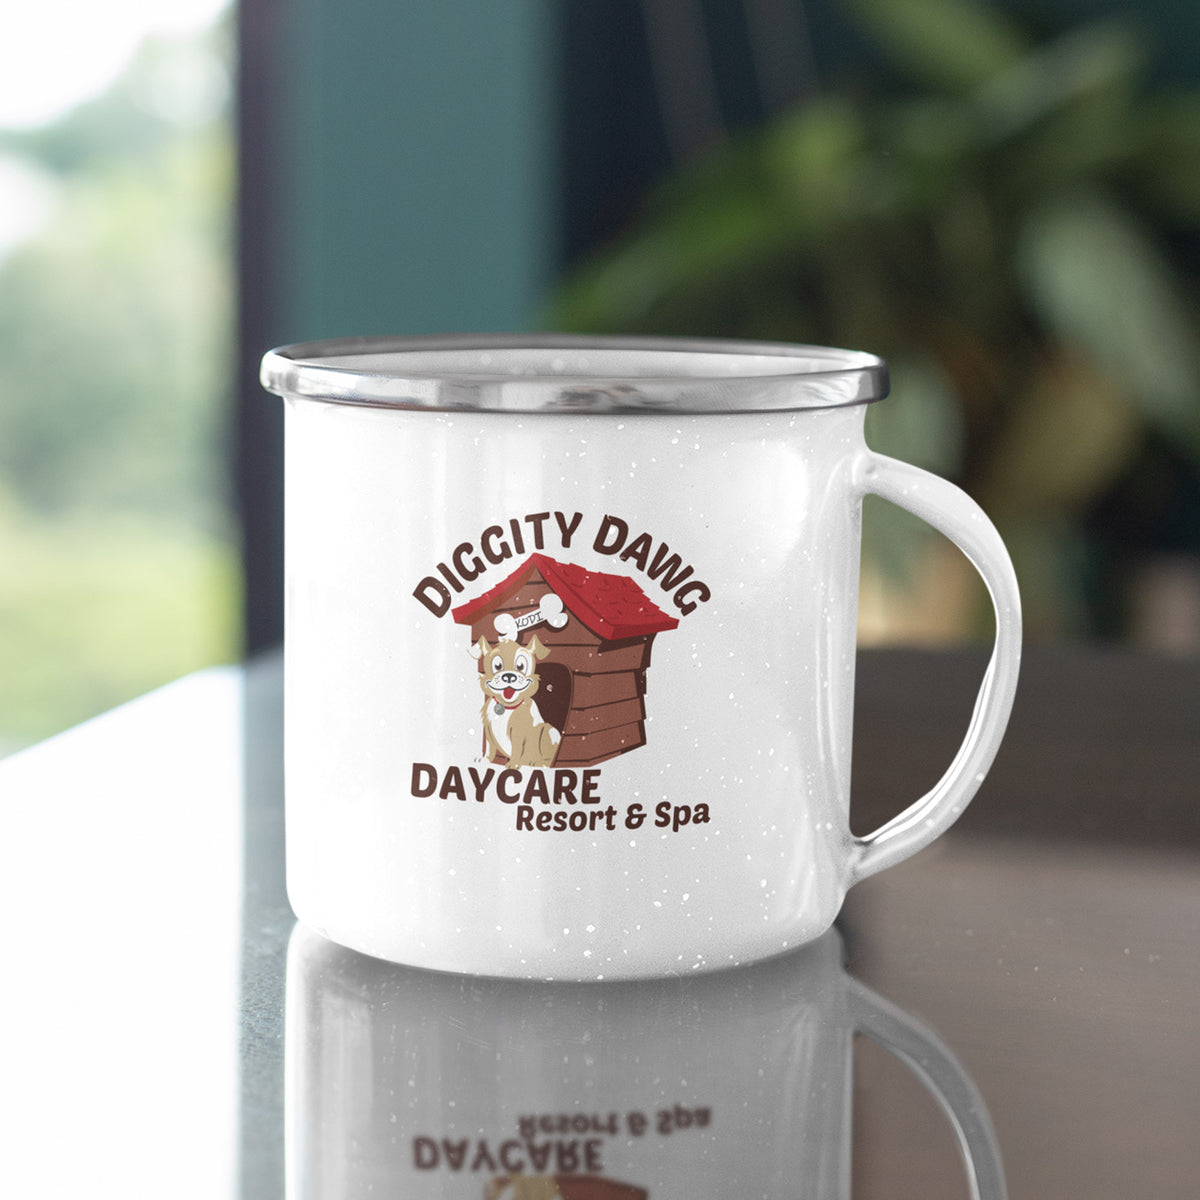 Diggity Dawg Daycare We Support PA Camp Mug